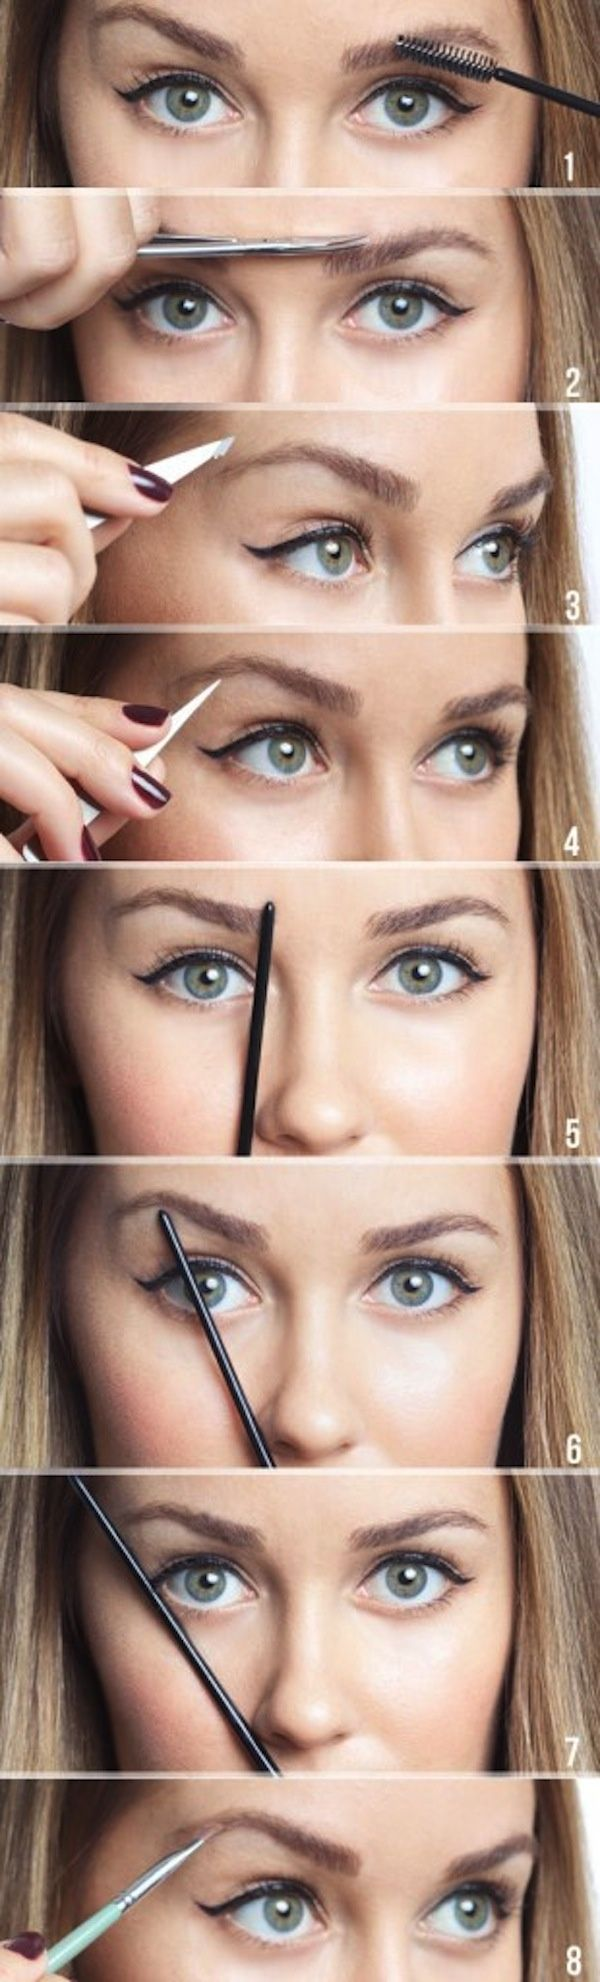 How to shape your eyebrows. Once mine grow back in, I have ...